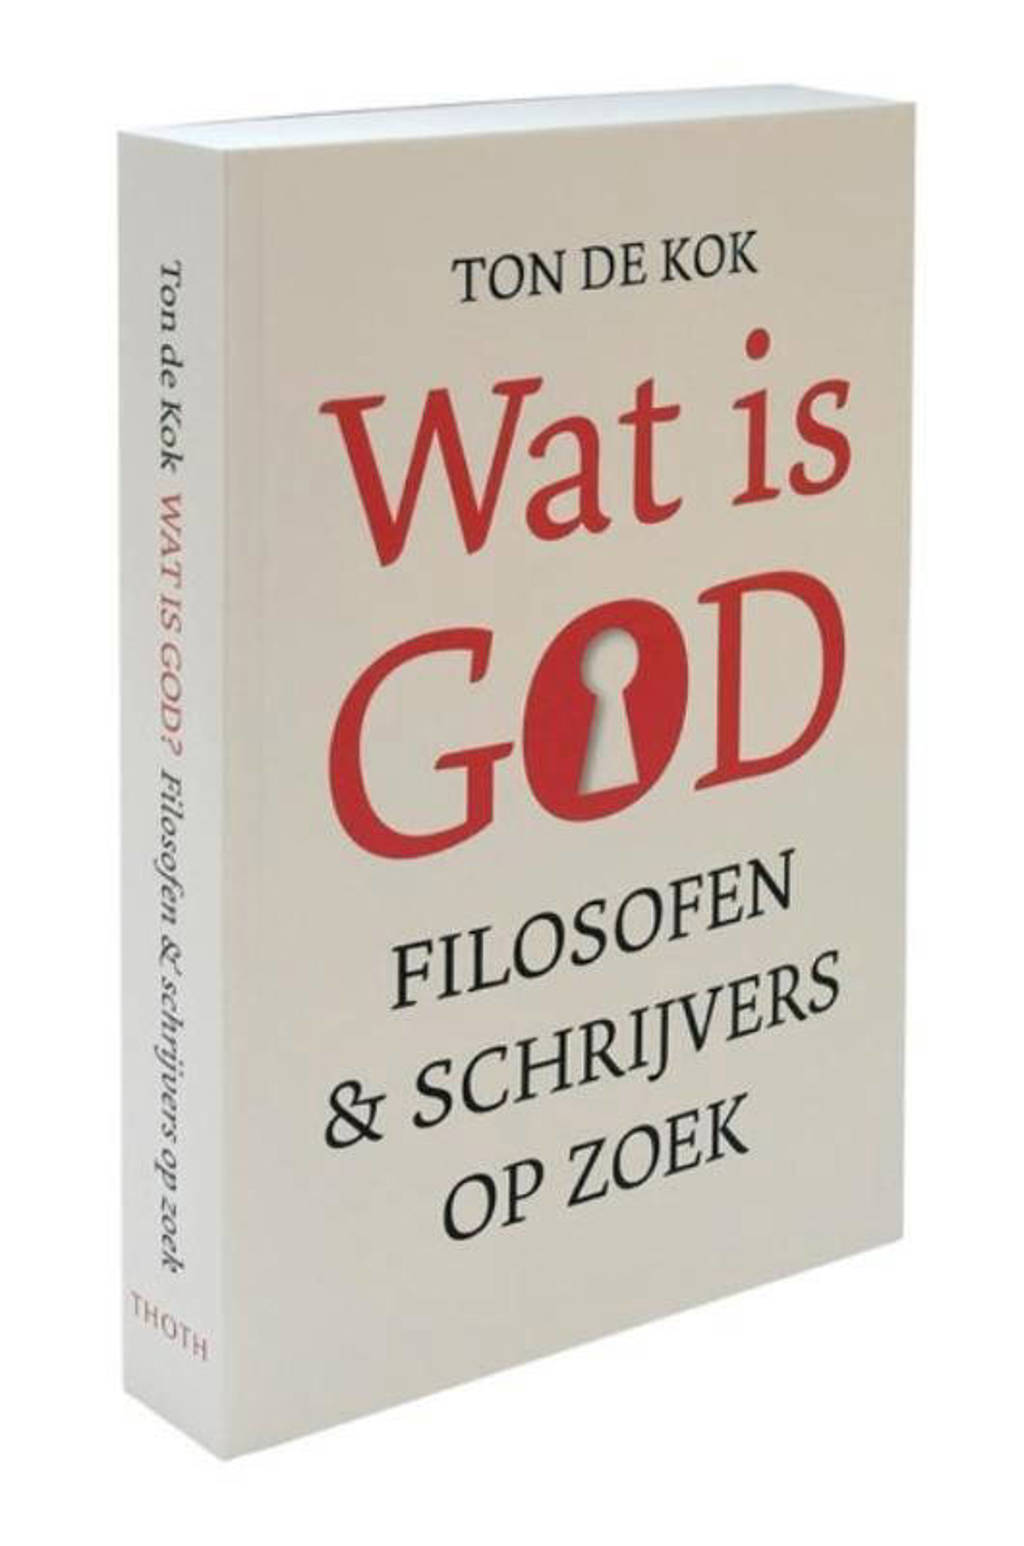 Wat is God - Ton de Kok